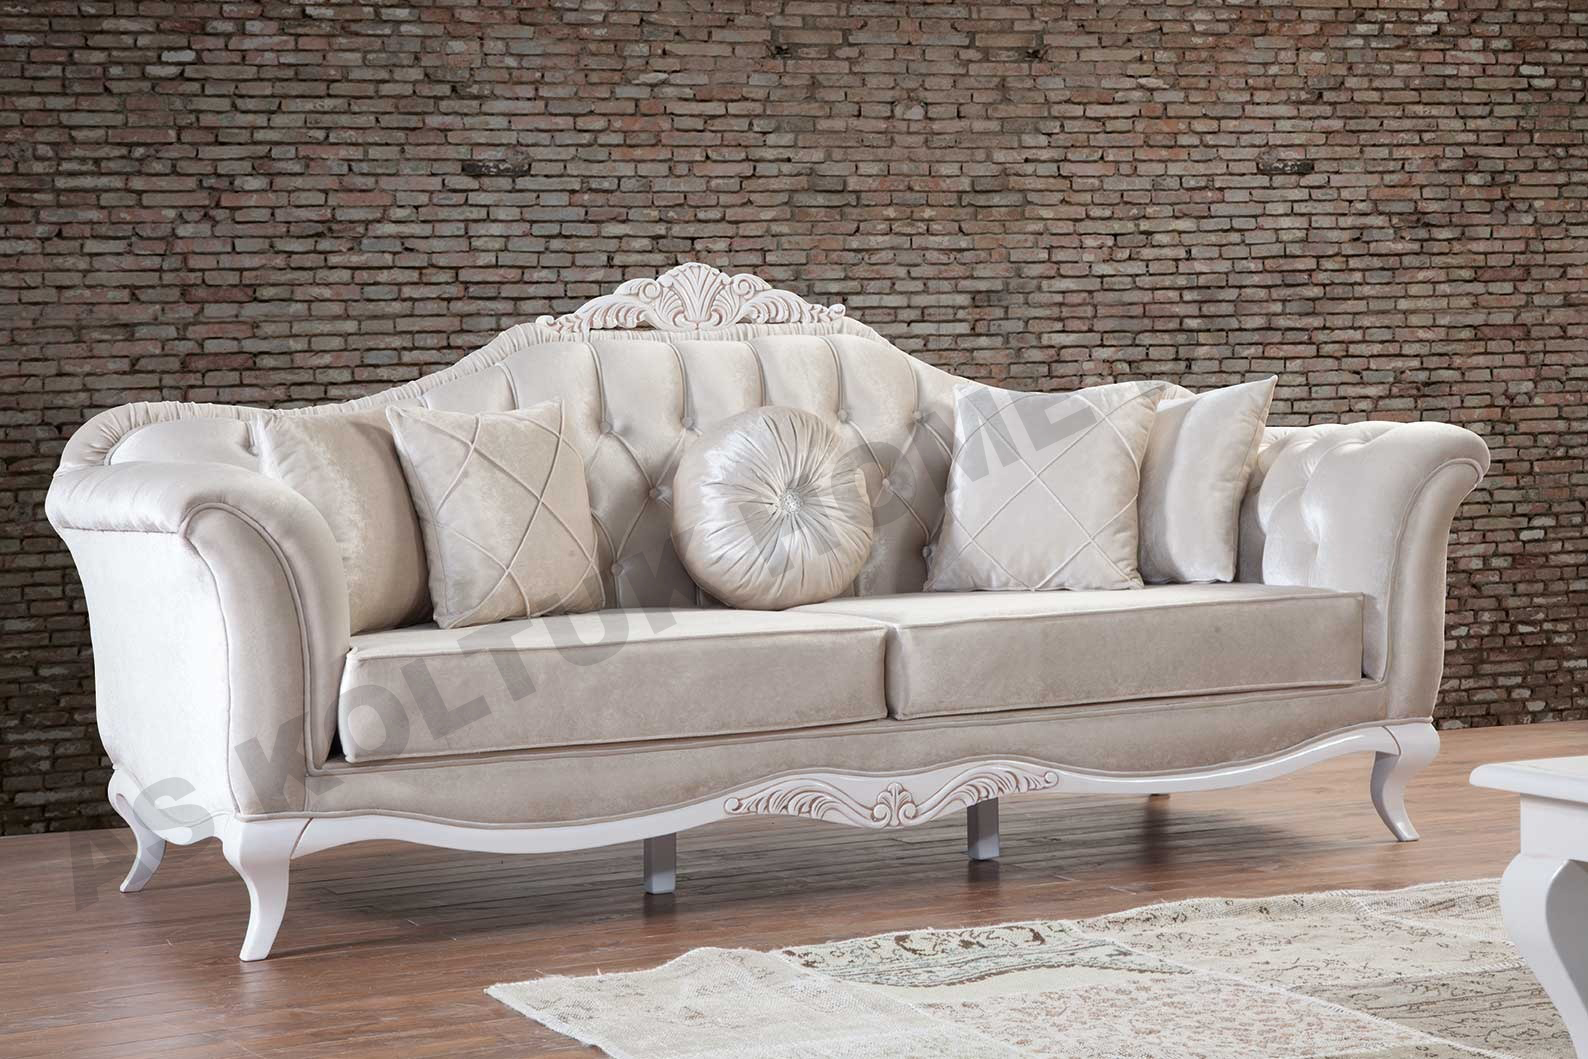 Superbe For Sale Brand New Elegant Broken White Sofa Set With Classic Design And  White Wood Legs Made In Turkey With High Quality Materials.